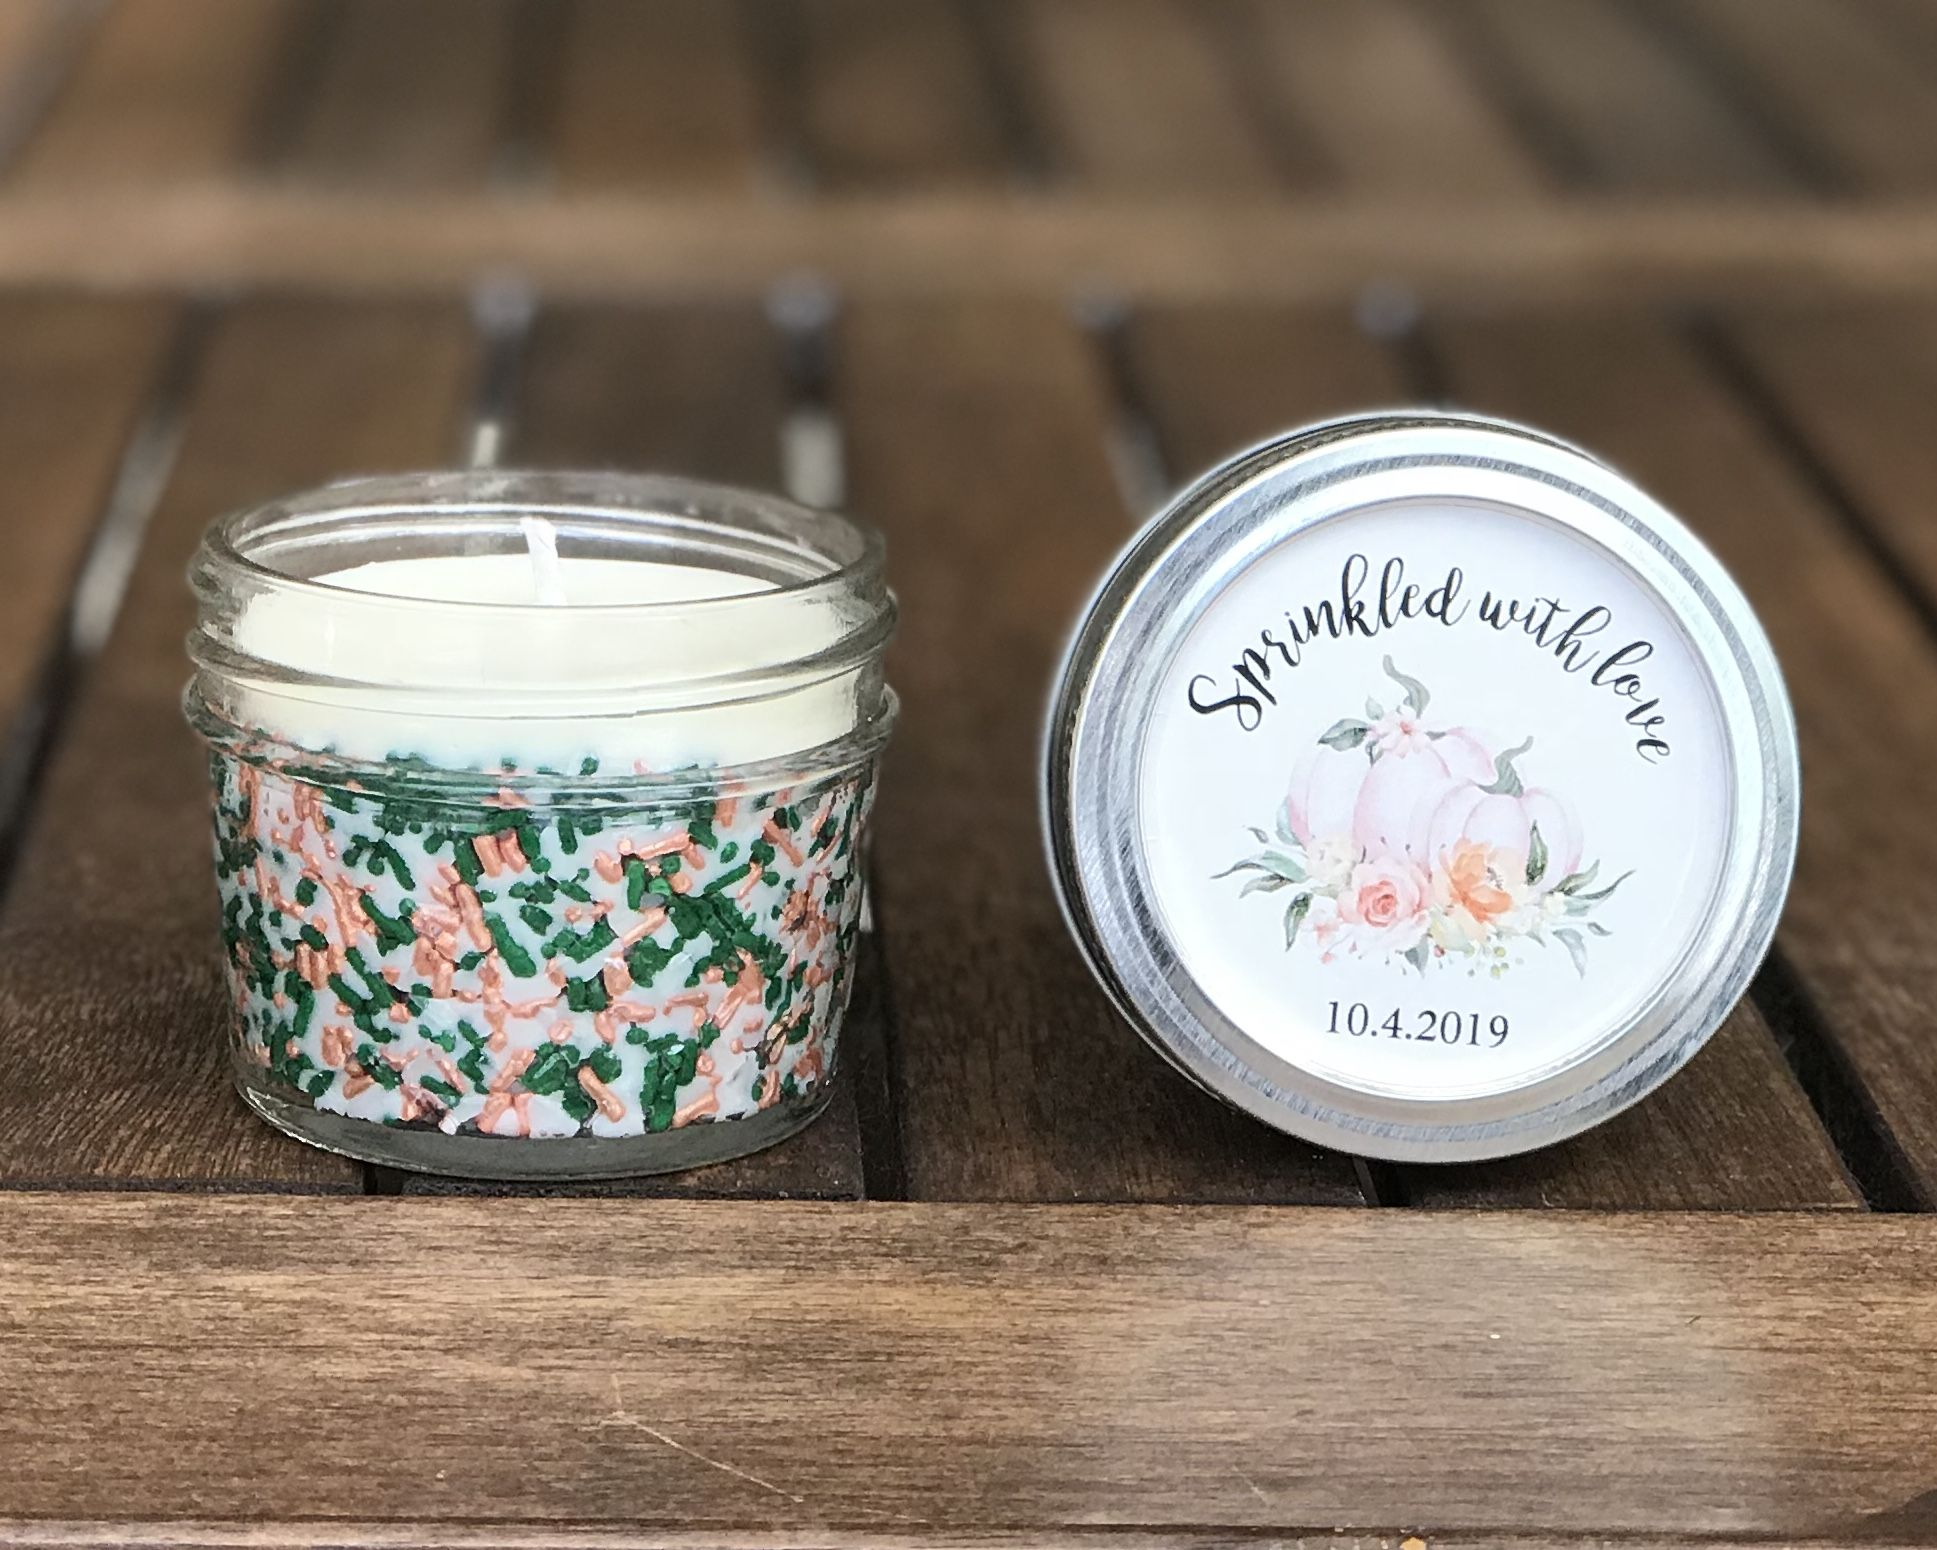 4 Oz Custom Candles In Any Color Custom Candle Party Favors Baby Sprinkle Favors Baby Shower Favors Mason Jar Candle Favors Custom Candles Pumpkin Candles Mason Jar Candle Favors